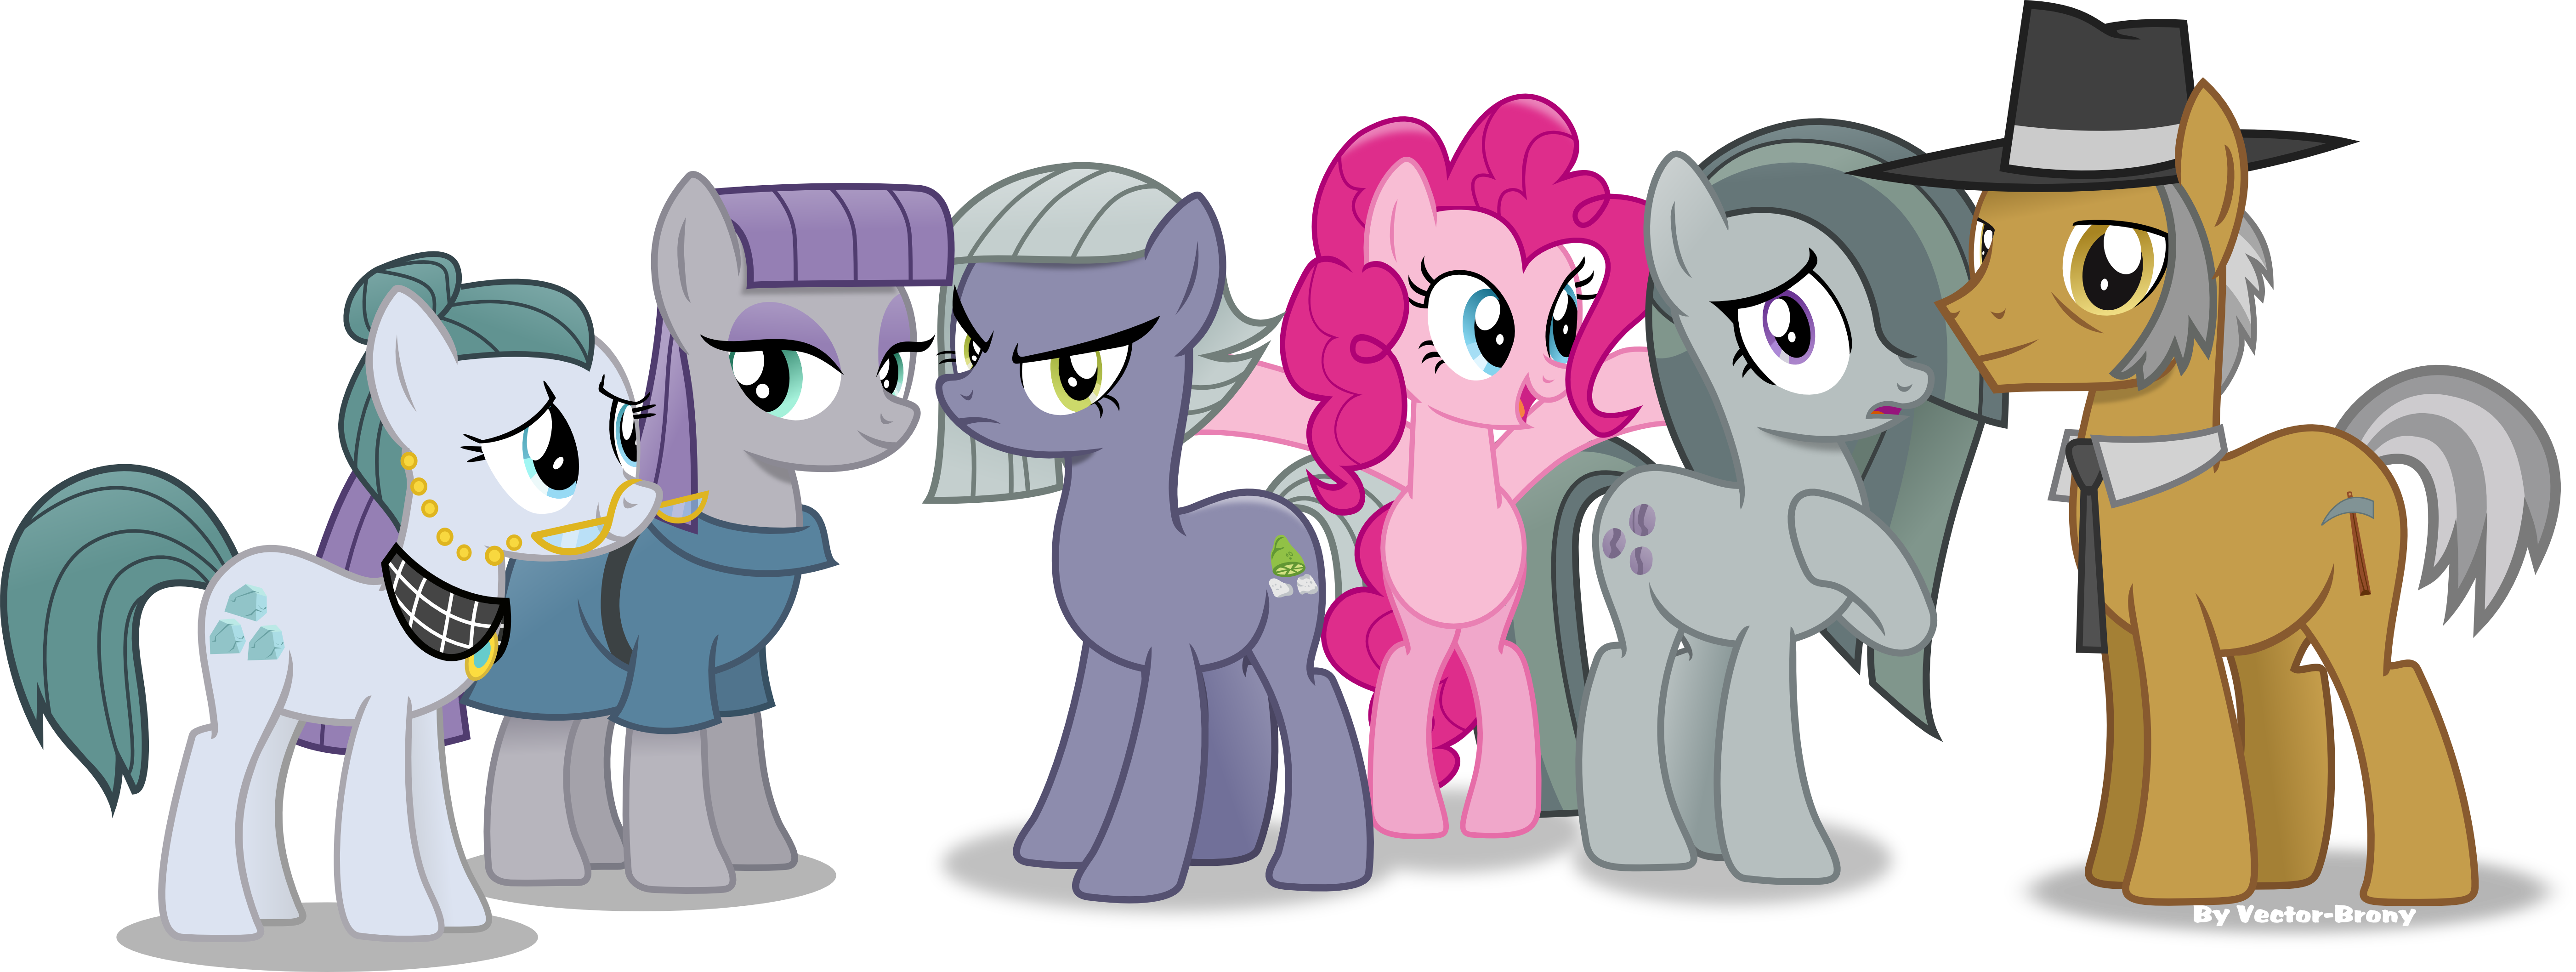 pinkie_pie_s_family_revised_revised_by_v